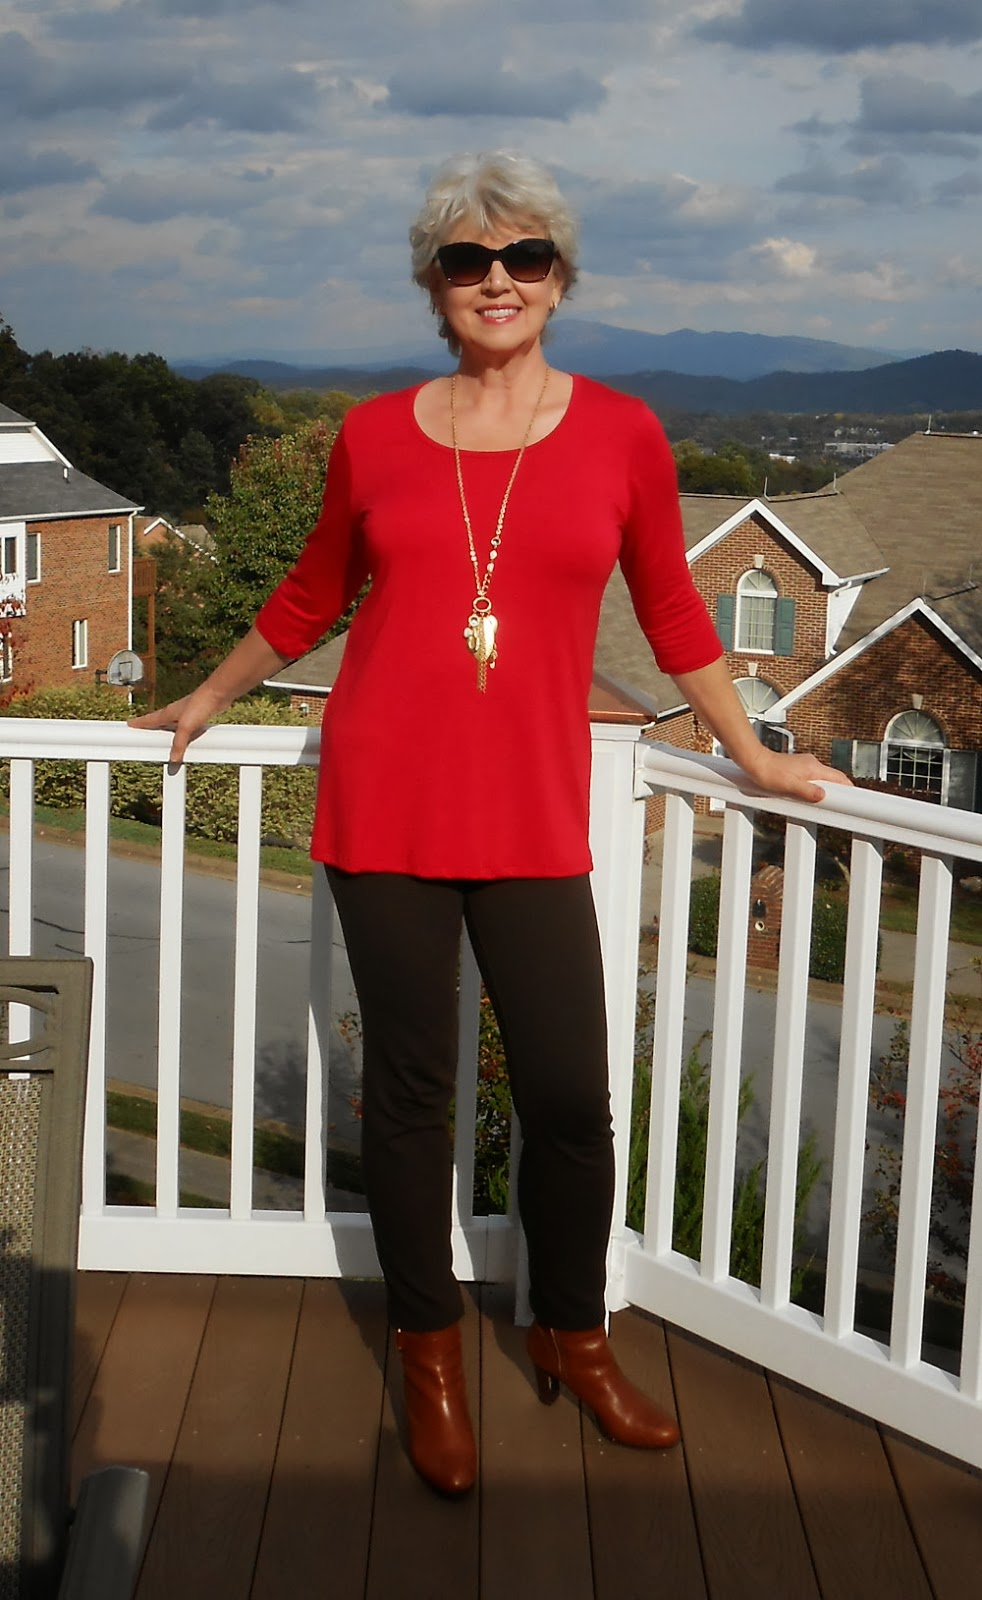 red hook single women over 50 Free shipping on usa orders over $50 | new sale items added  women aloha blouses hawaiian  home hawaiian fish hook necklace collection page 1 of 1.